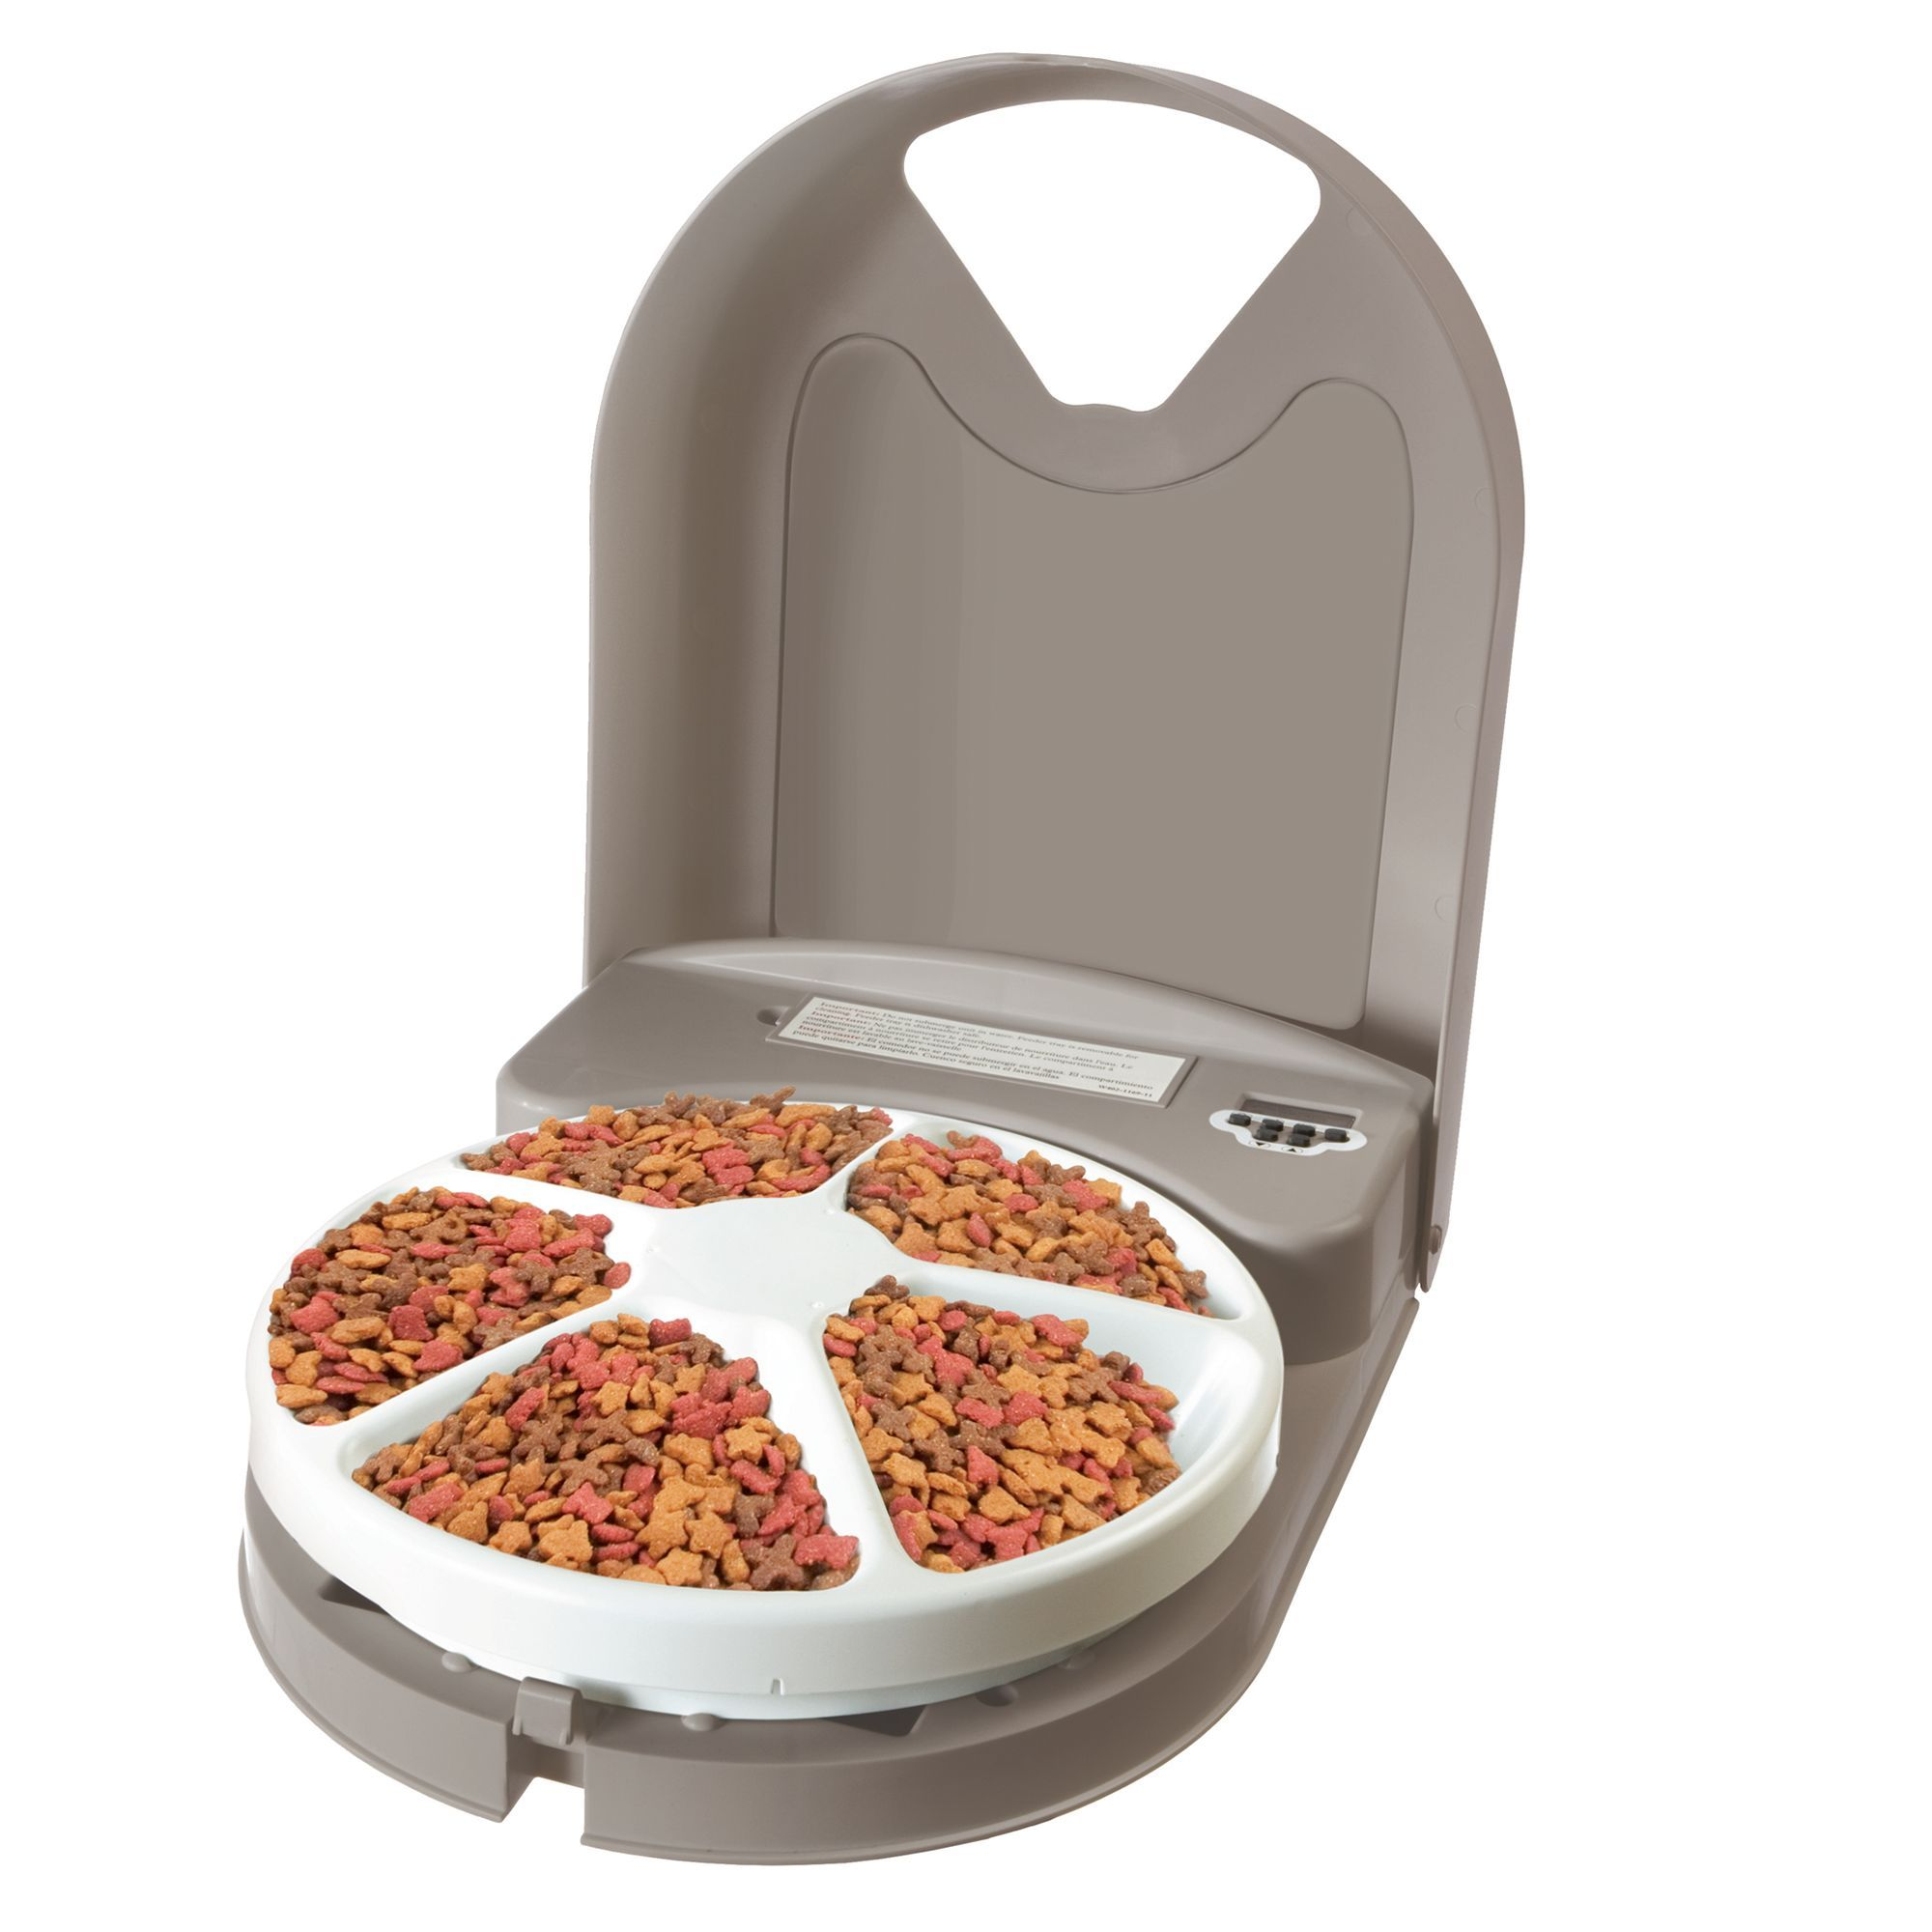 PetSafe Eatwell, 5 Meal Automatic Pet Feeder, Gray Cat